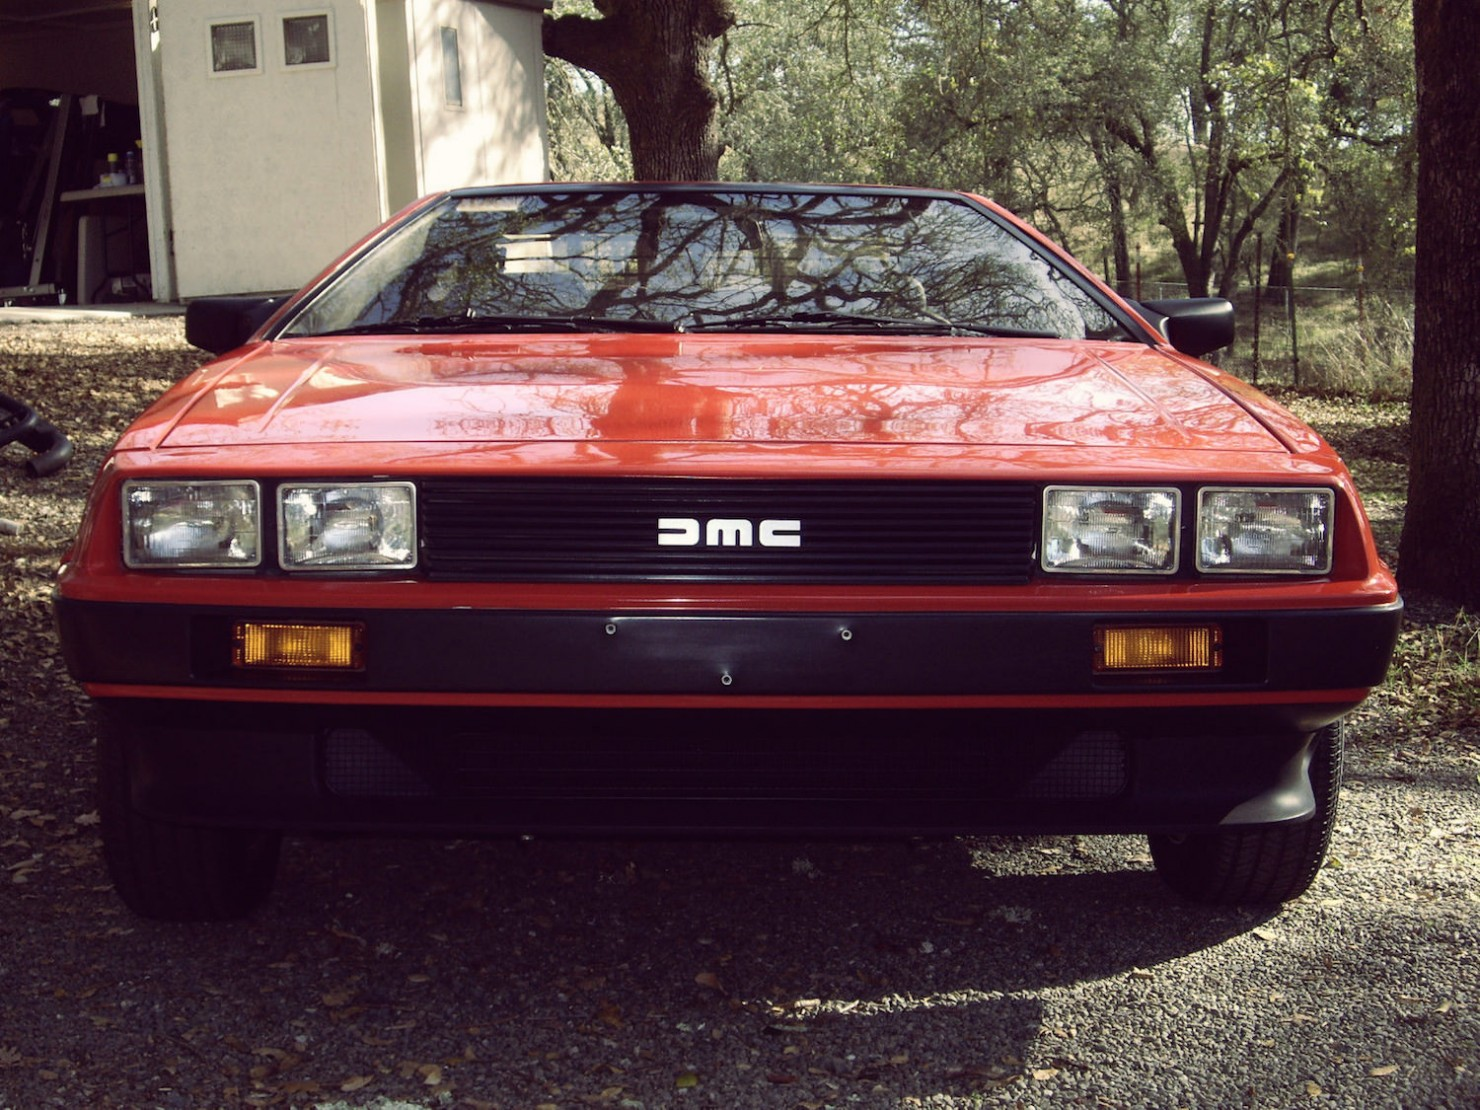 DeLorean-Car-12